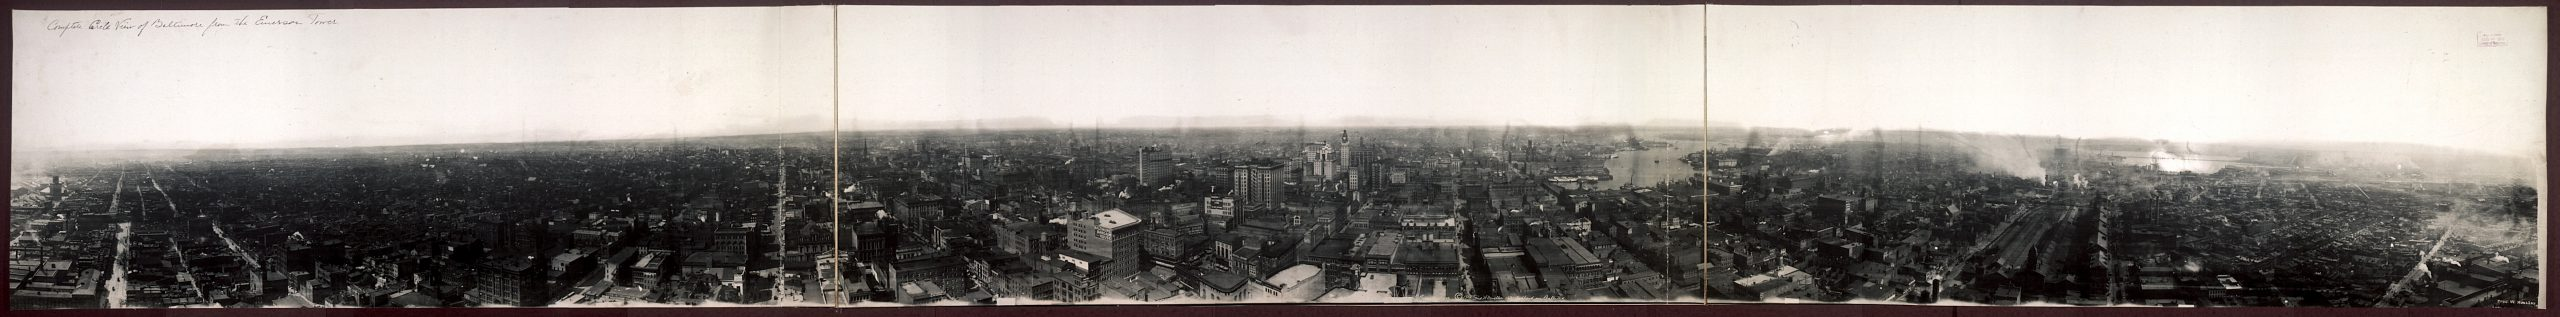 Wow! 360-Degree View of Baltimore from Emerson Tower (1913)